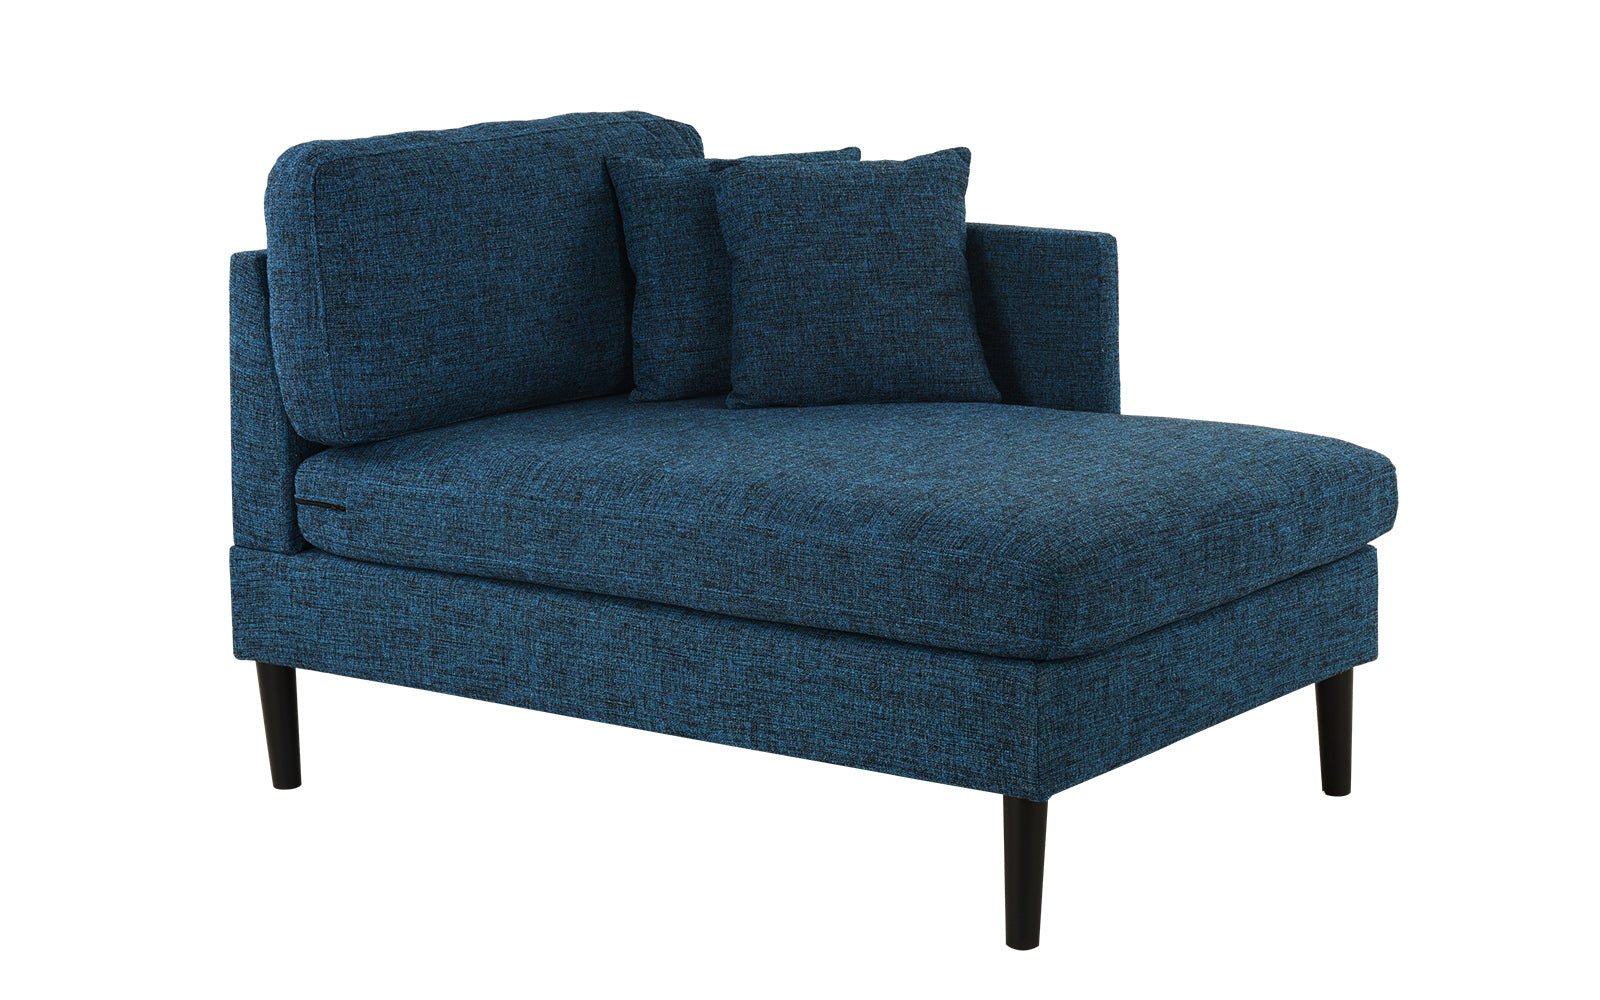 August Modern Chaise Lounge with Wooden Legs